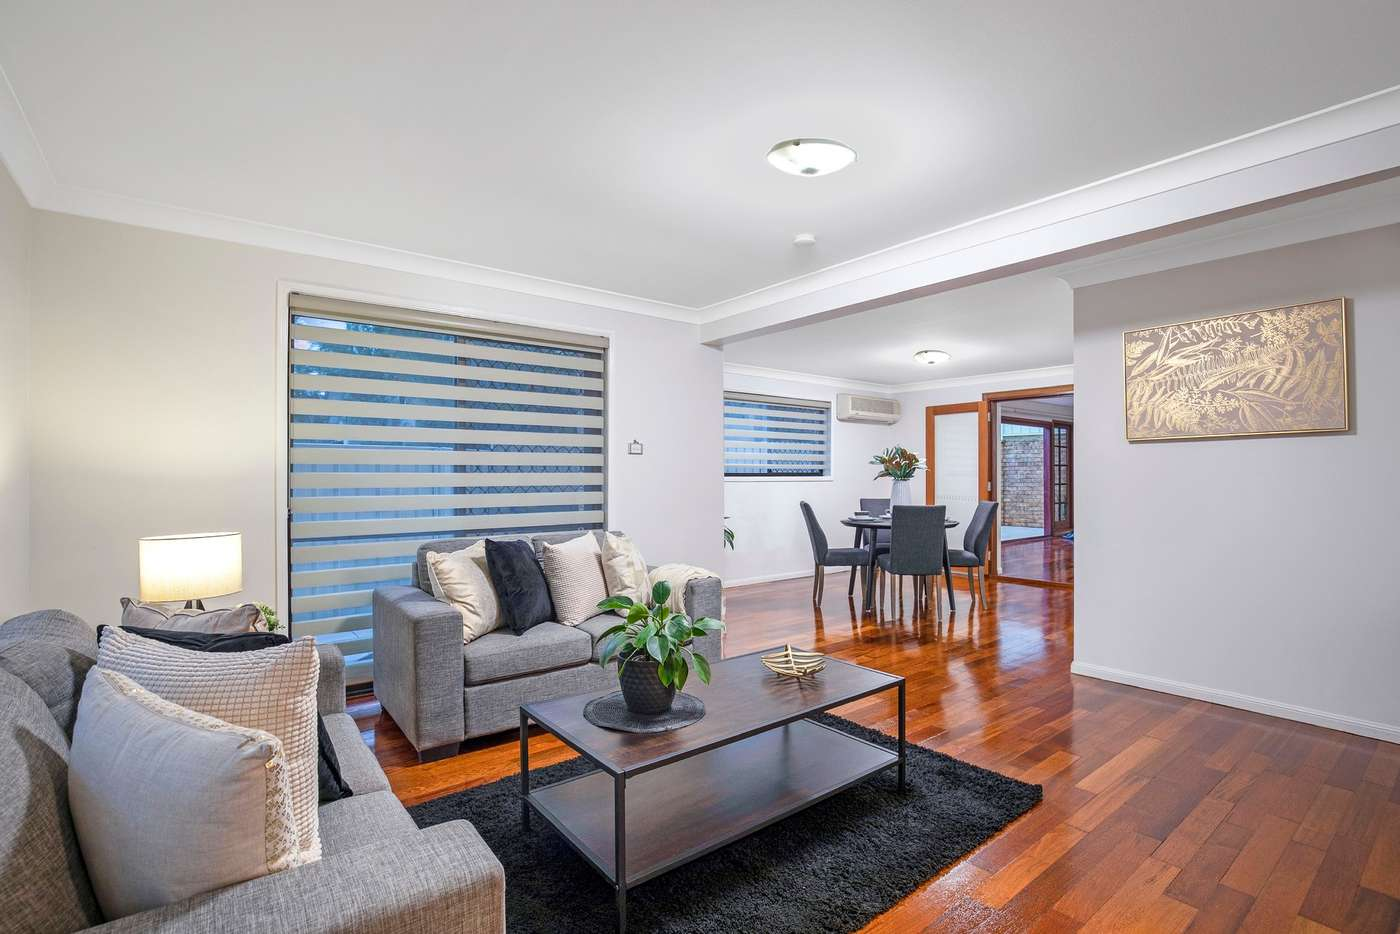 Fifth view of Homely house listing, 308 Gallipoli Road, Carina Heights QLD 4152